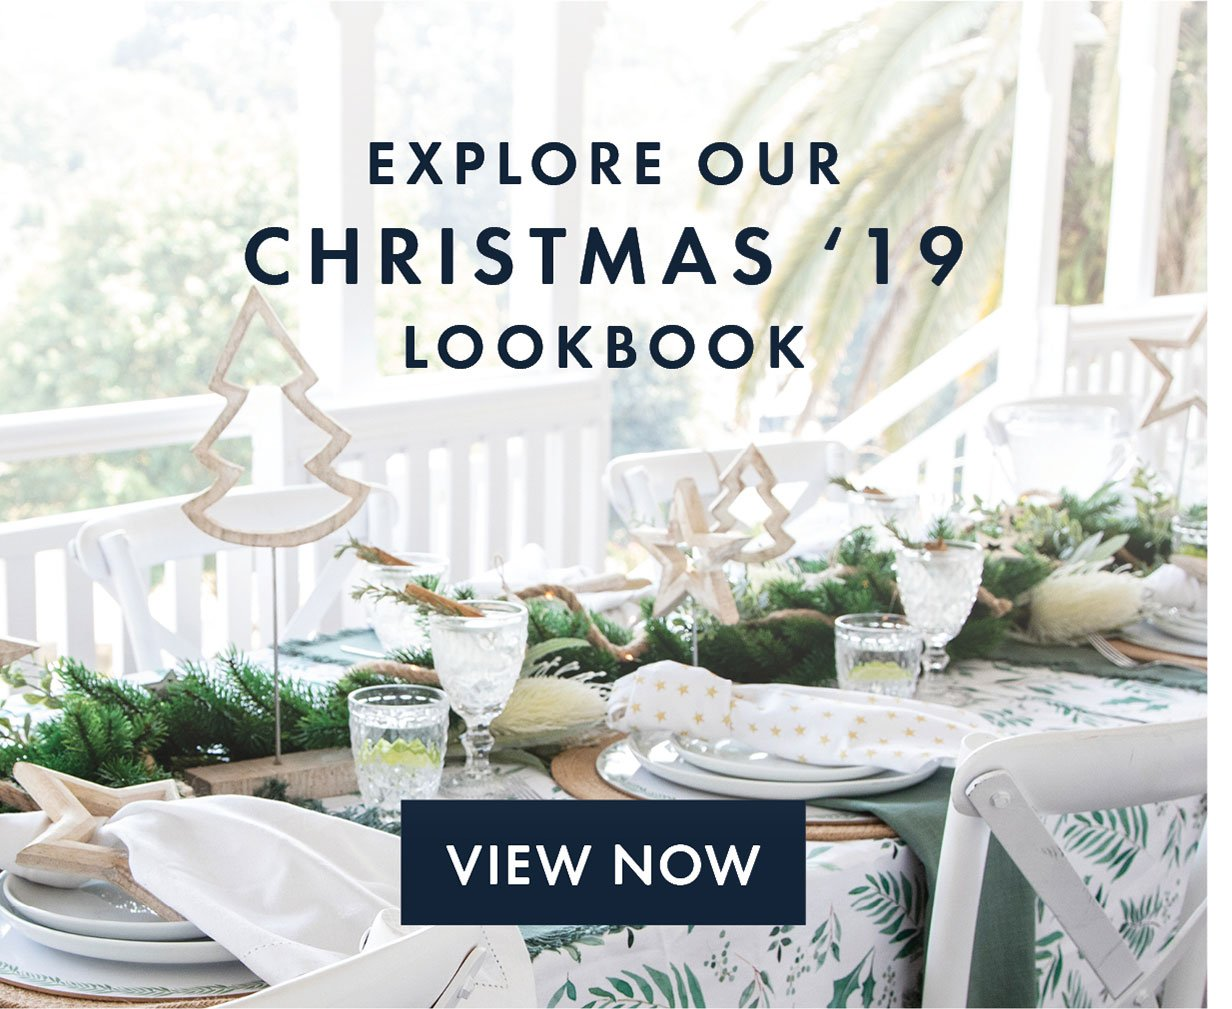 Explore Our Christmas Lookbook